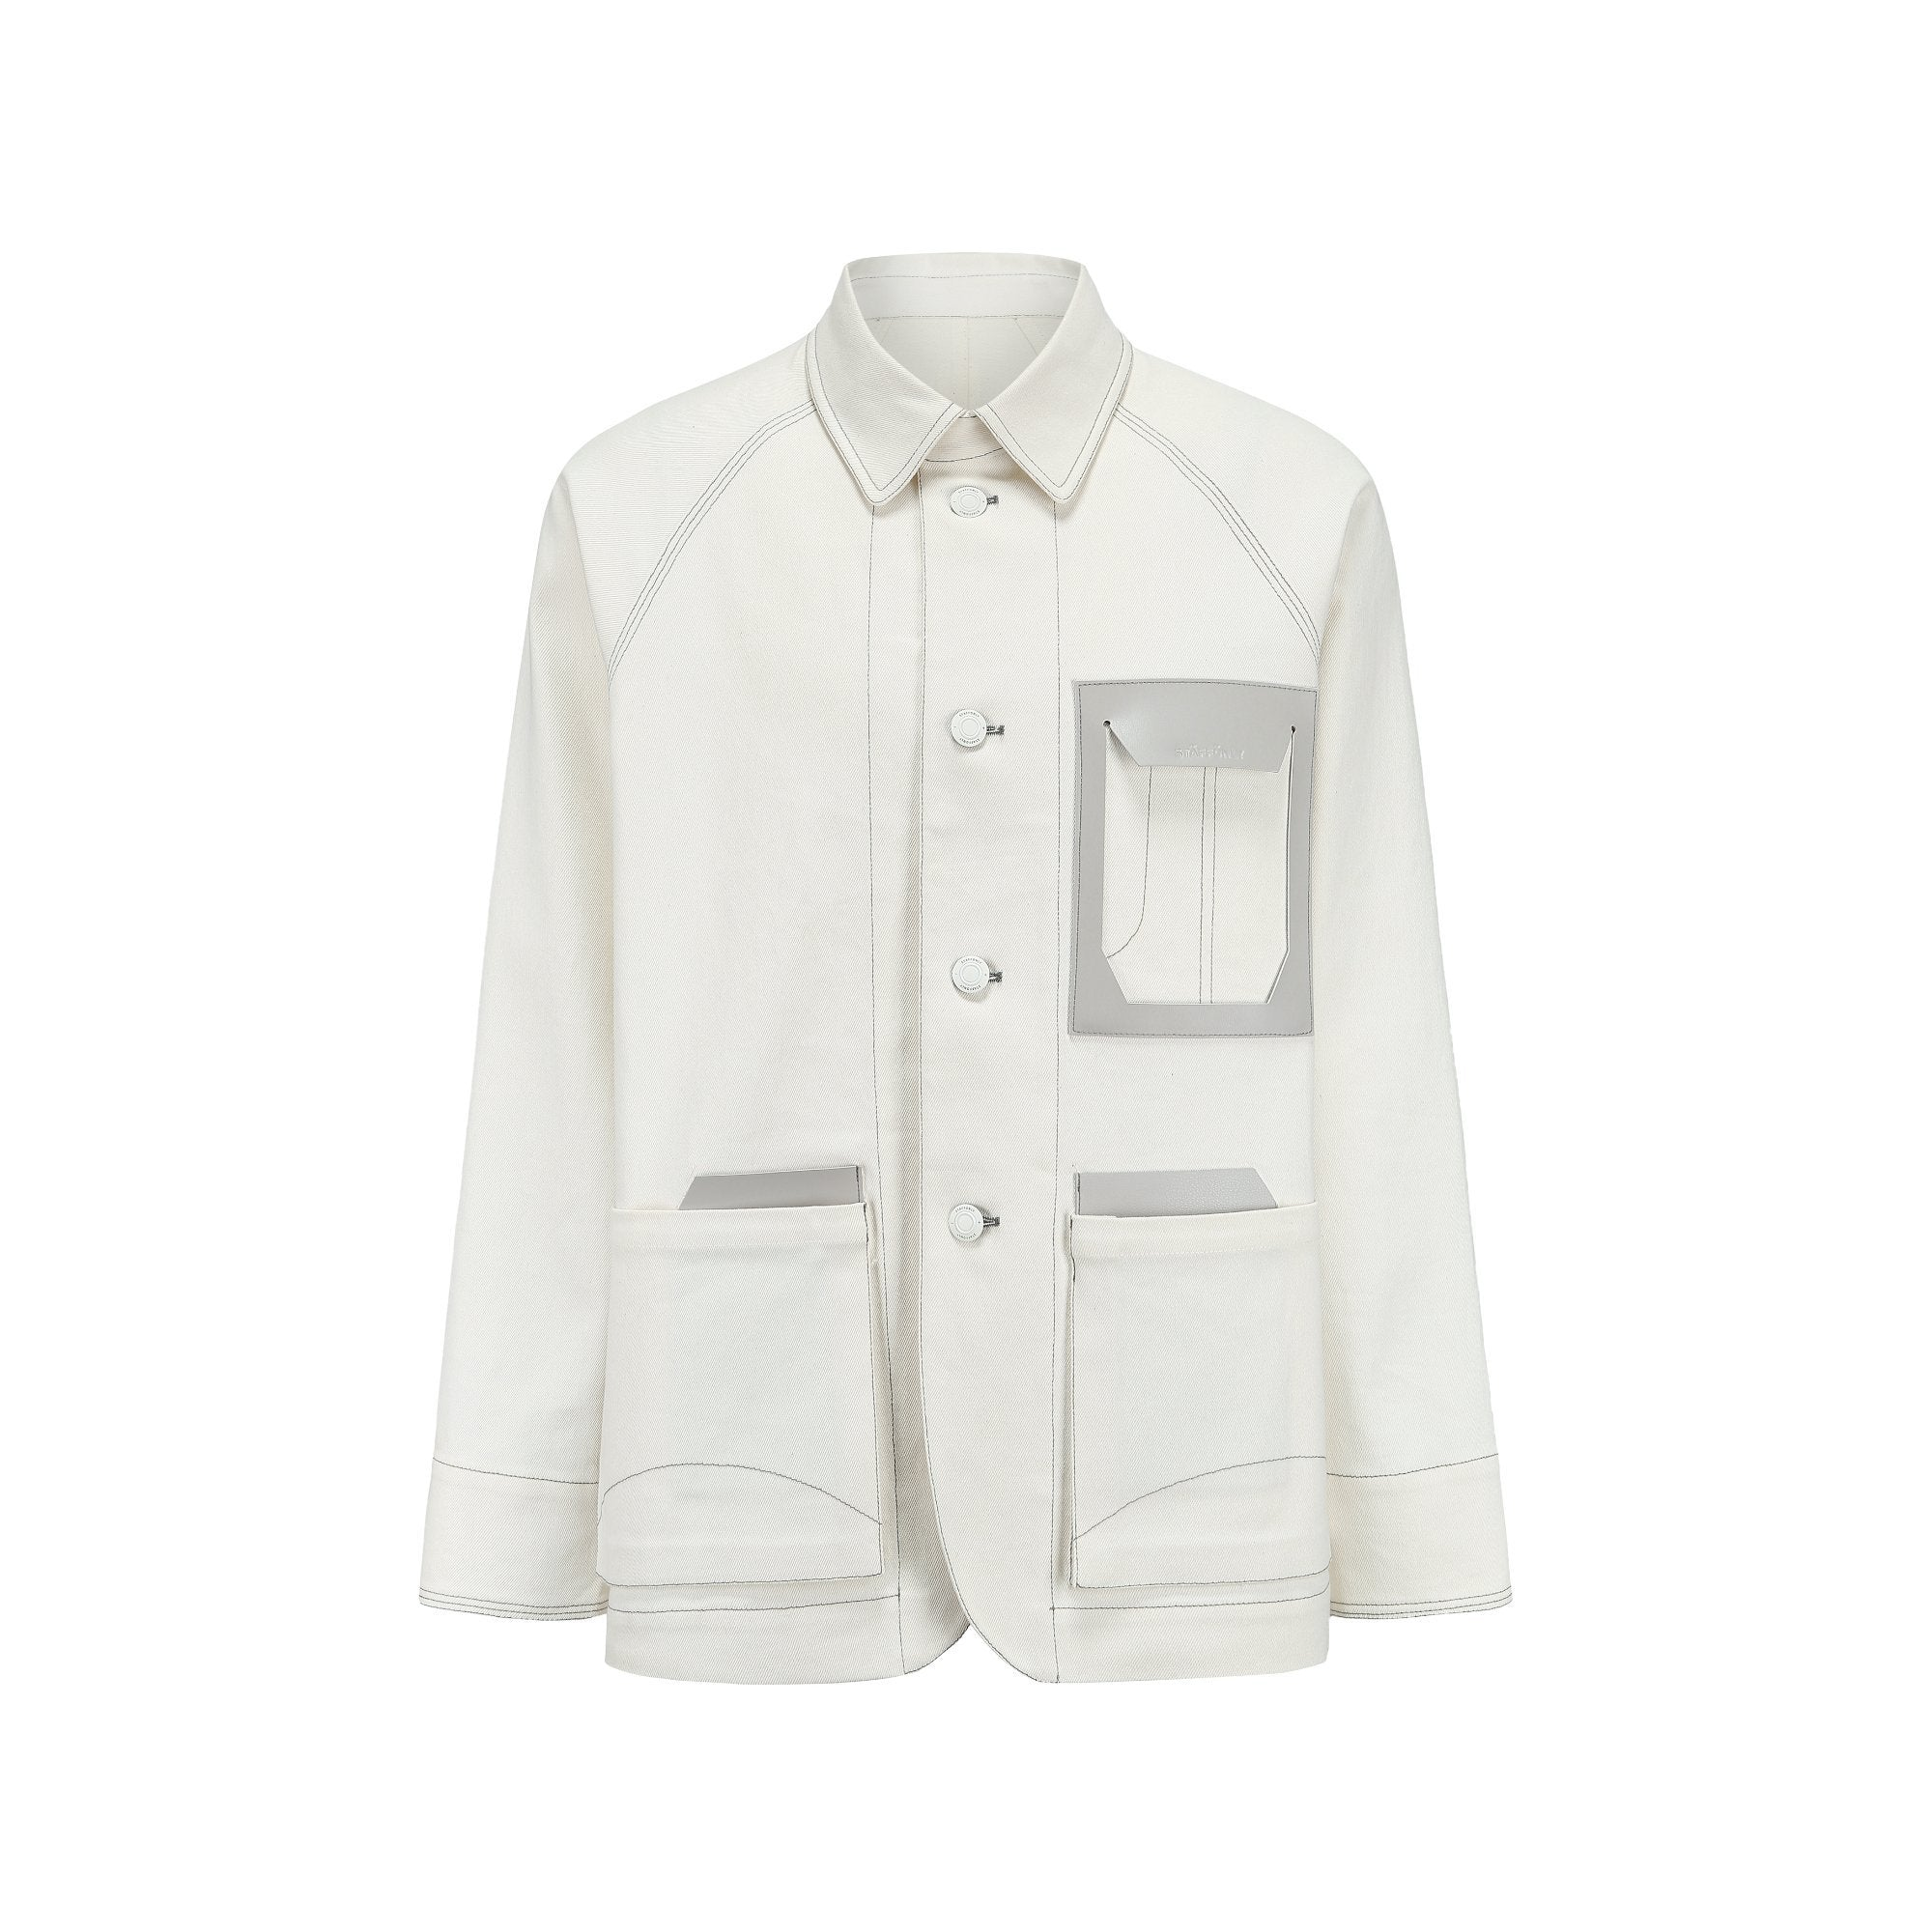 STAFF ONLY White Oversize Pocket Denim Jacket | MADA IN CHINA